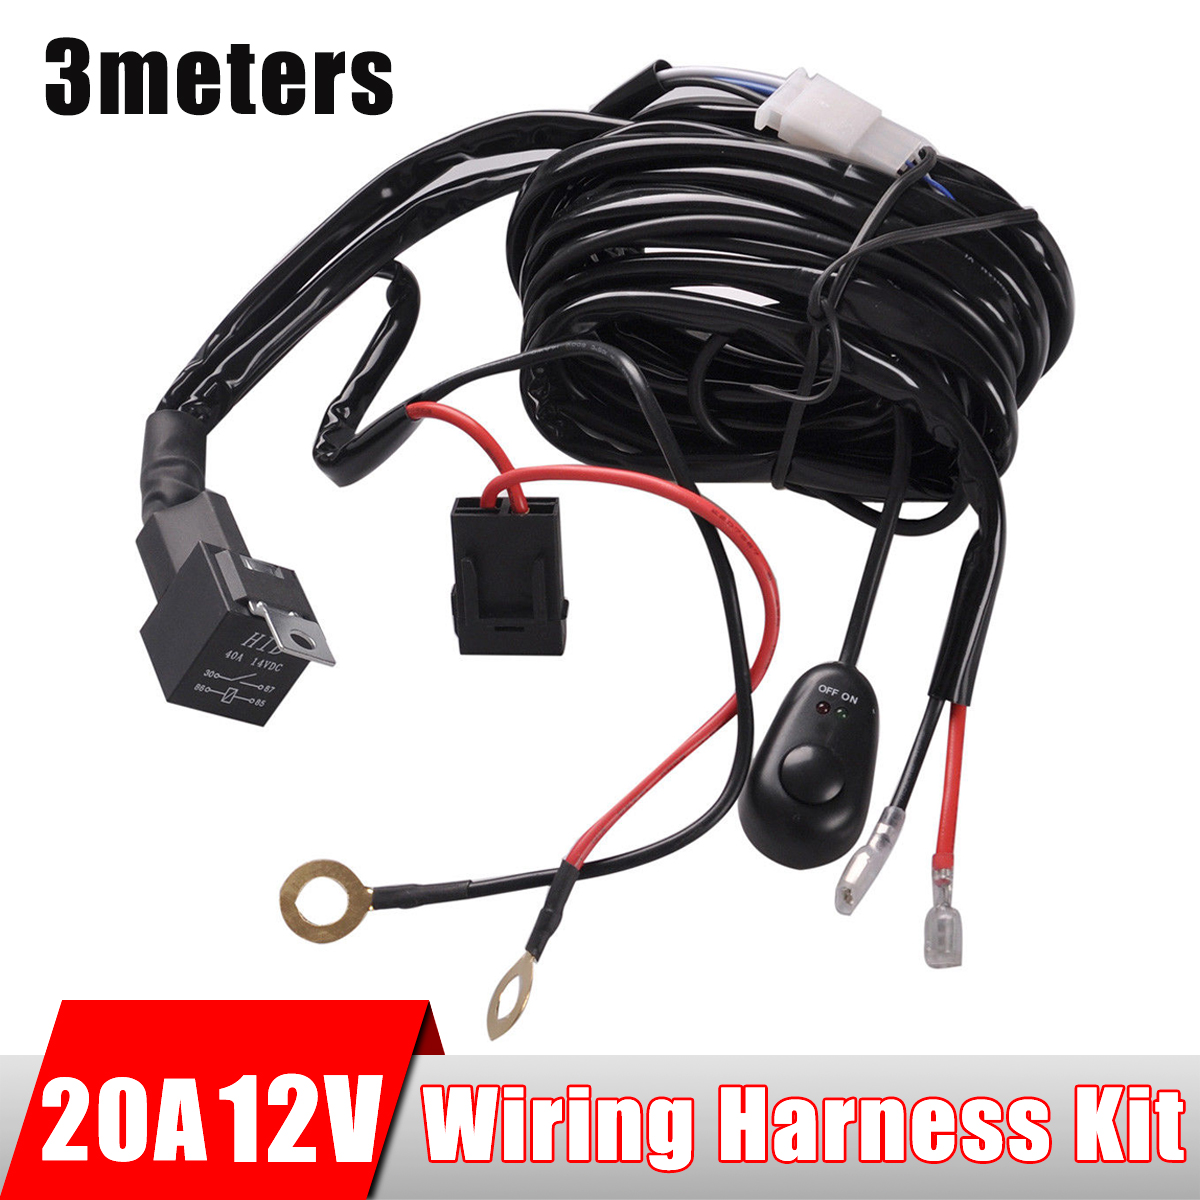 20a 12v Wiring Kit Includes Switch Relay For Led Spotlights Work Harness Fog Light Bar